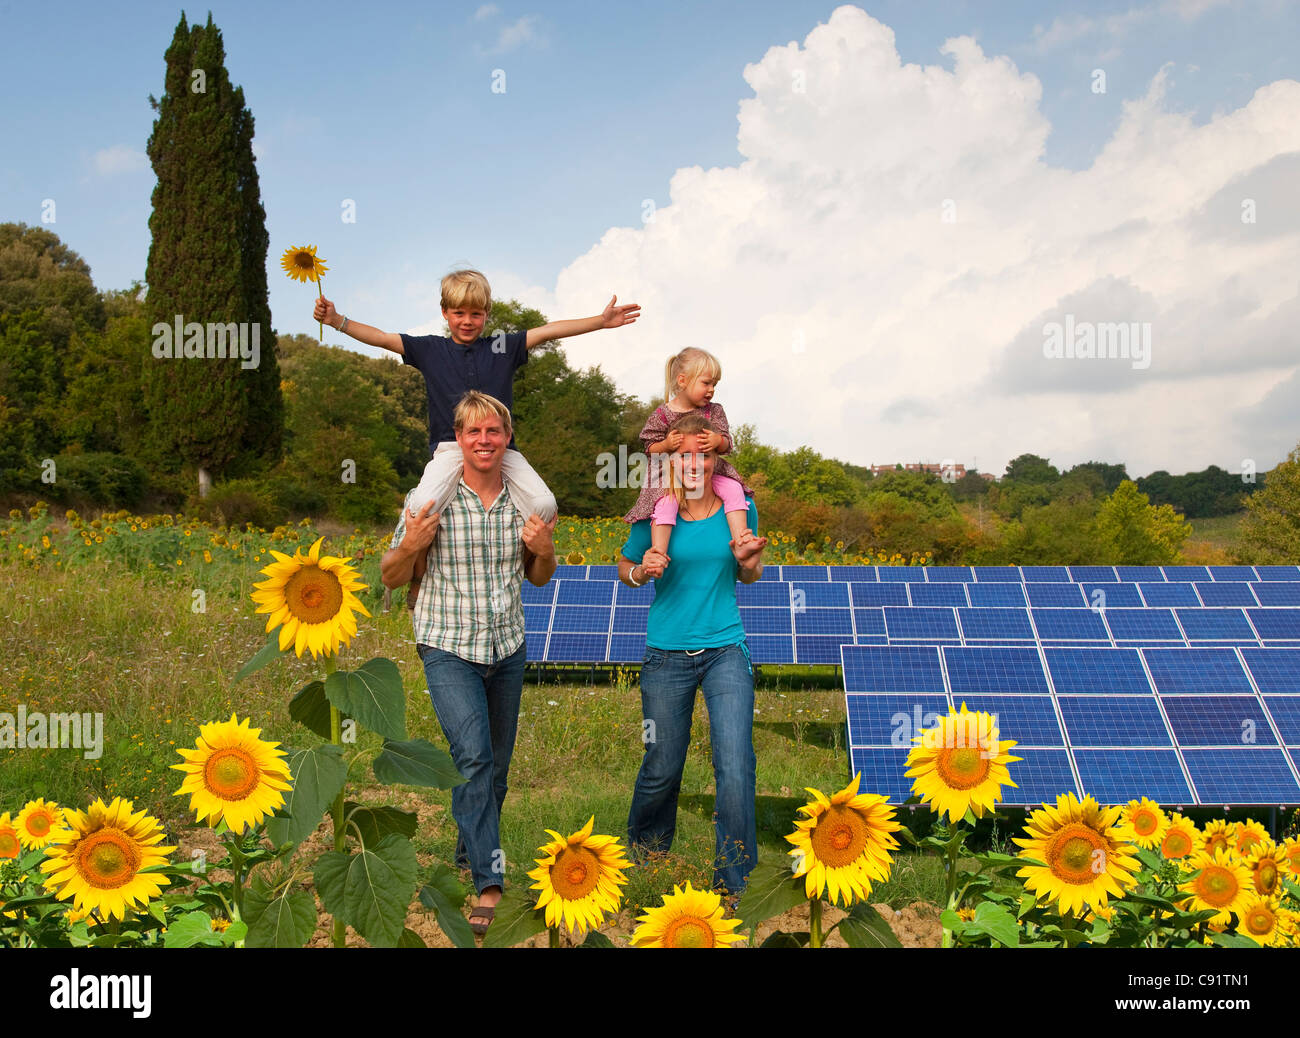 Family in field by solar panels - Stock Image